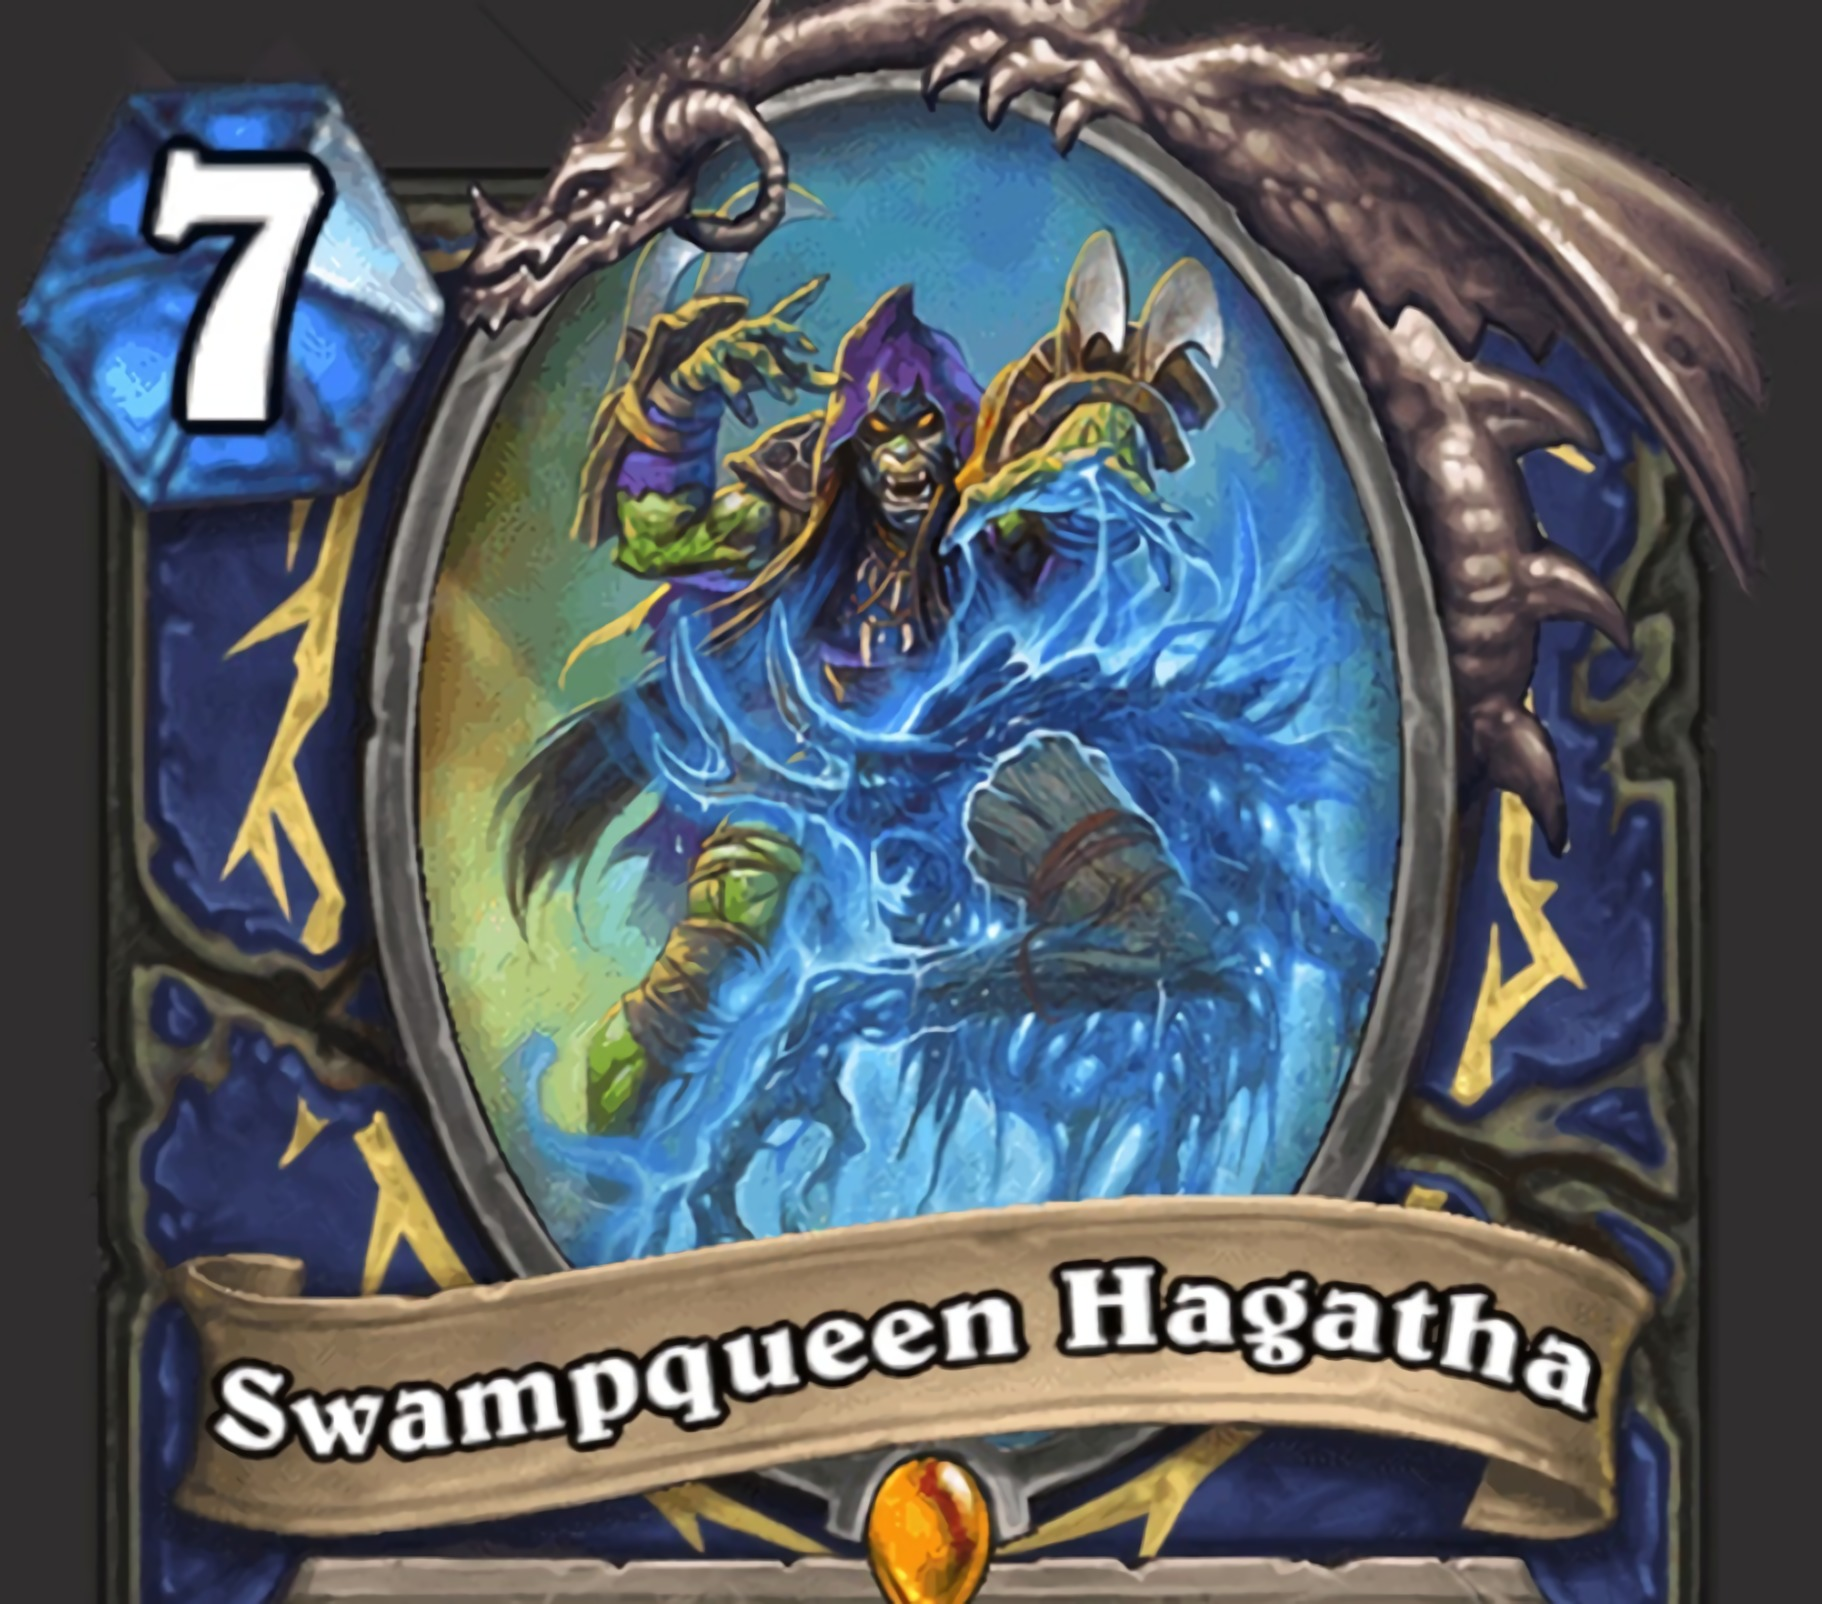 Shaman Legendary Hagatha the Witch is back with an awesome new Battlecry.